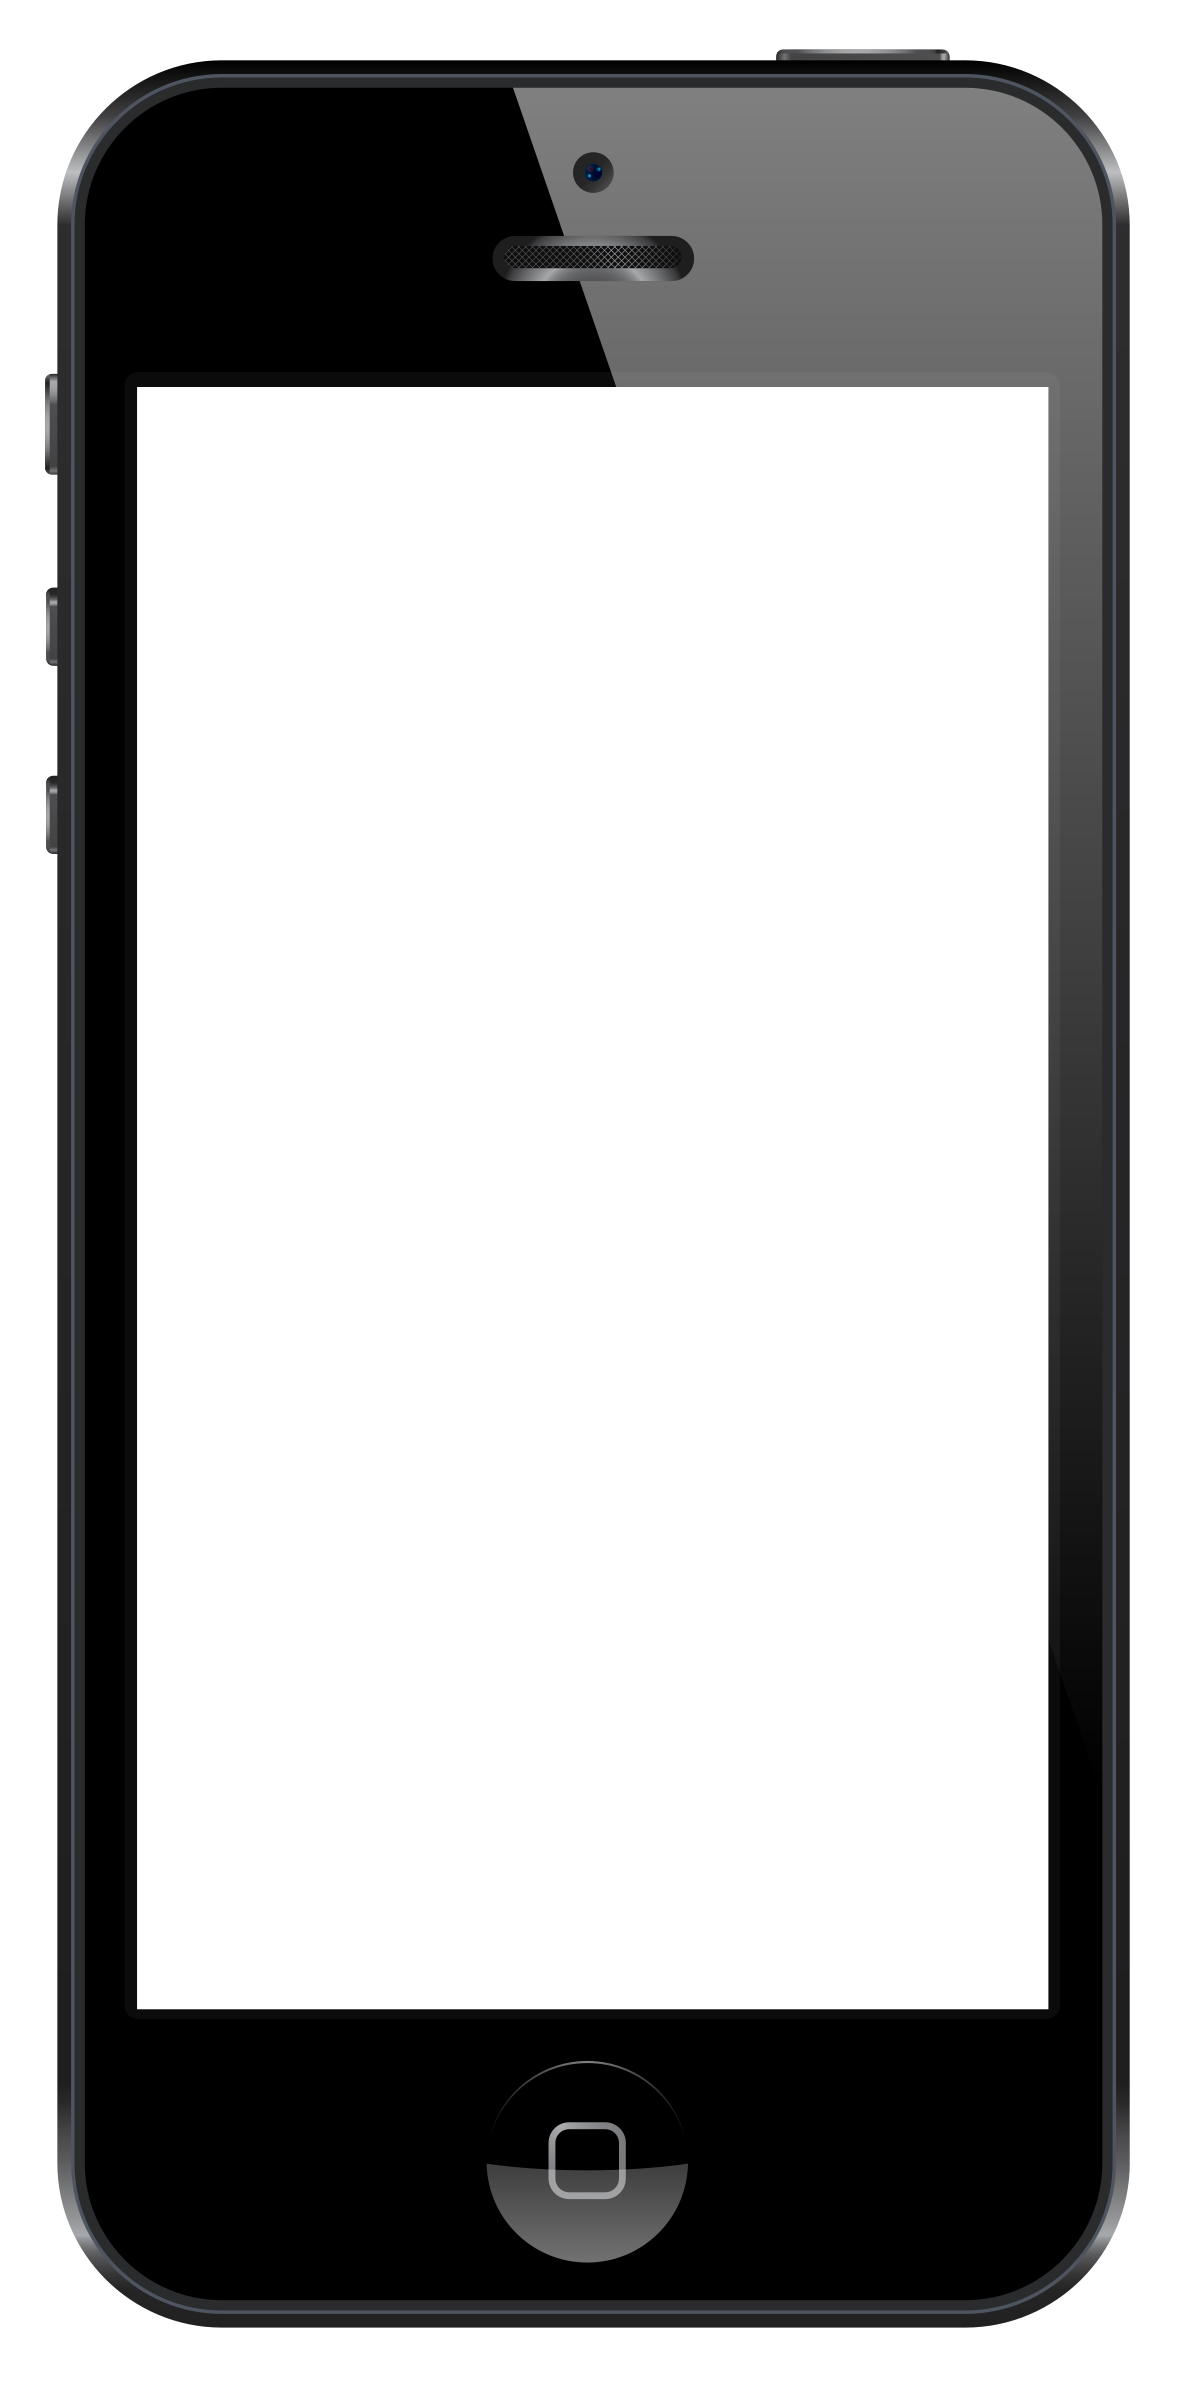 Free iphone clipart smartphone image 6 png